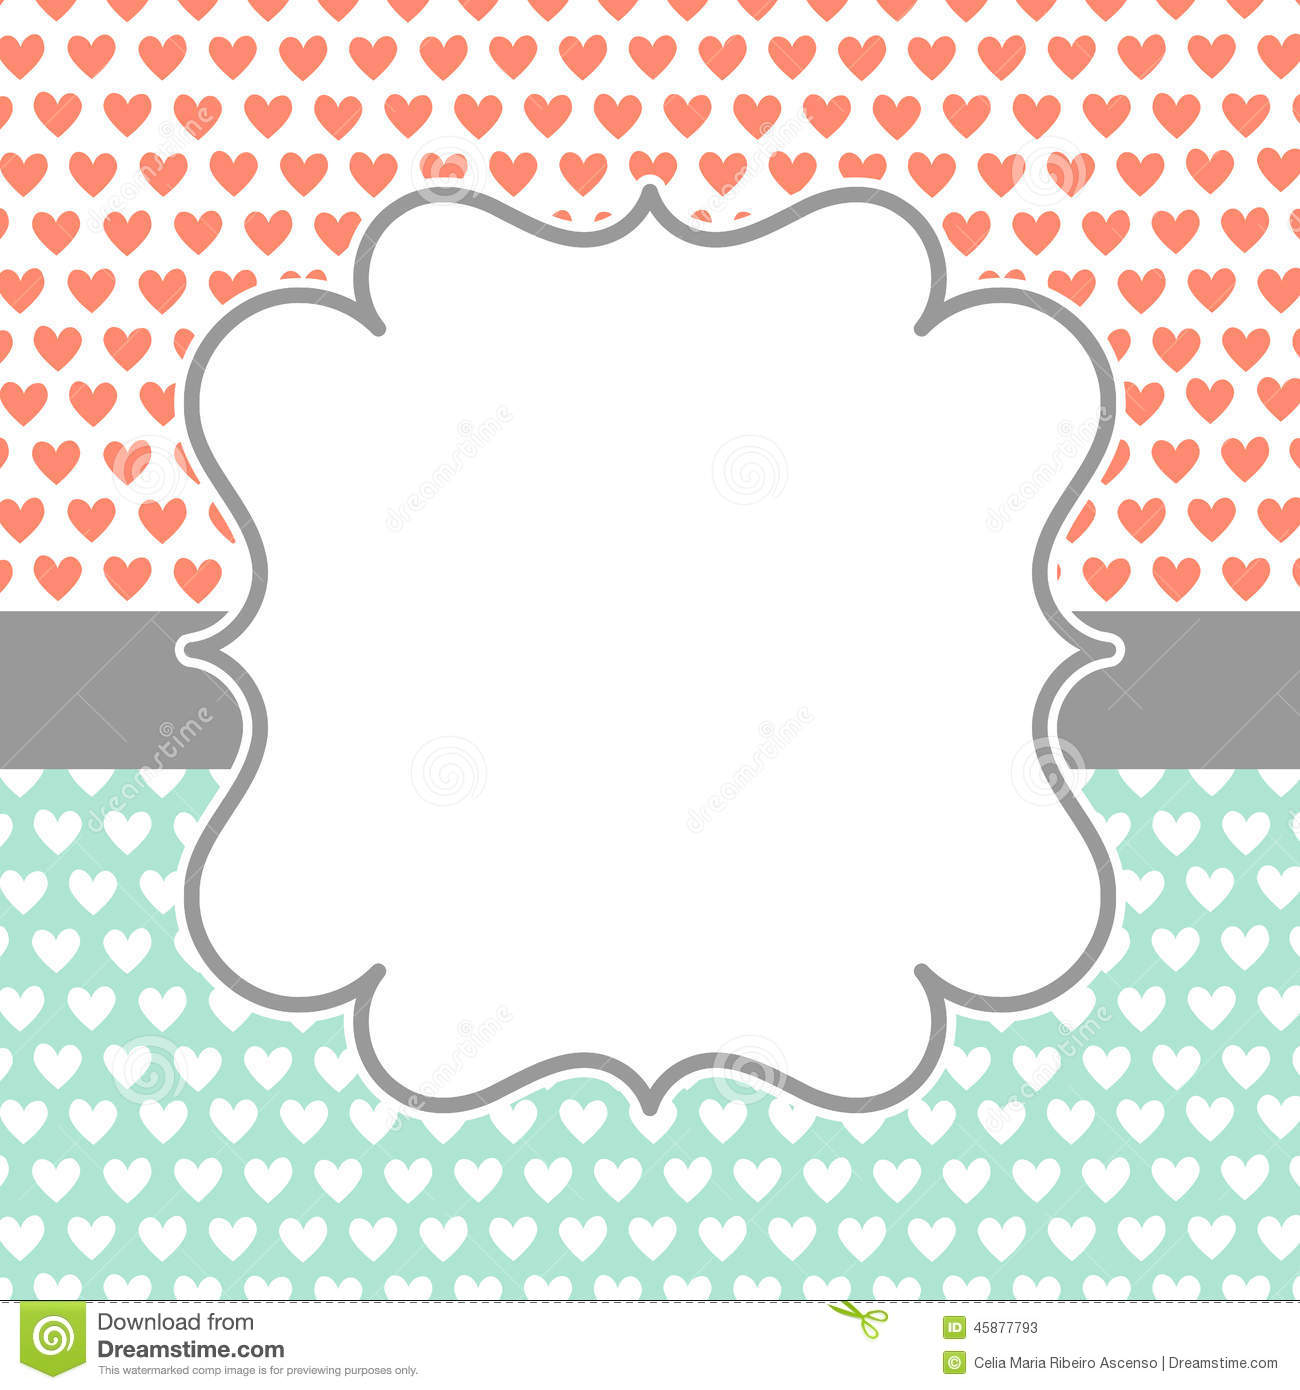 Invitation Card with polka hearts and frame